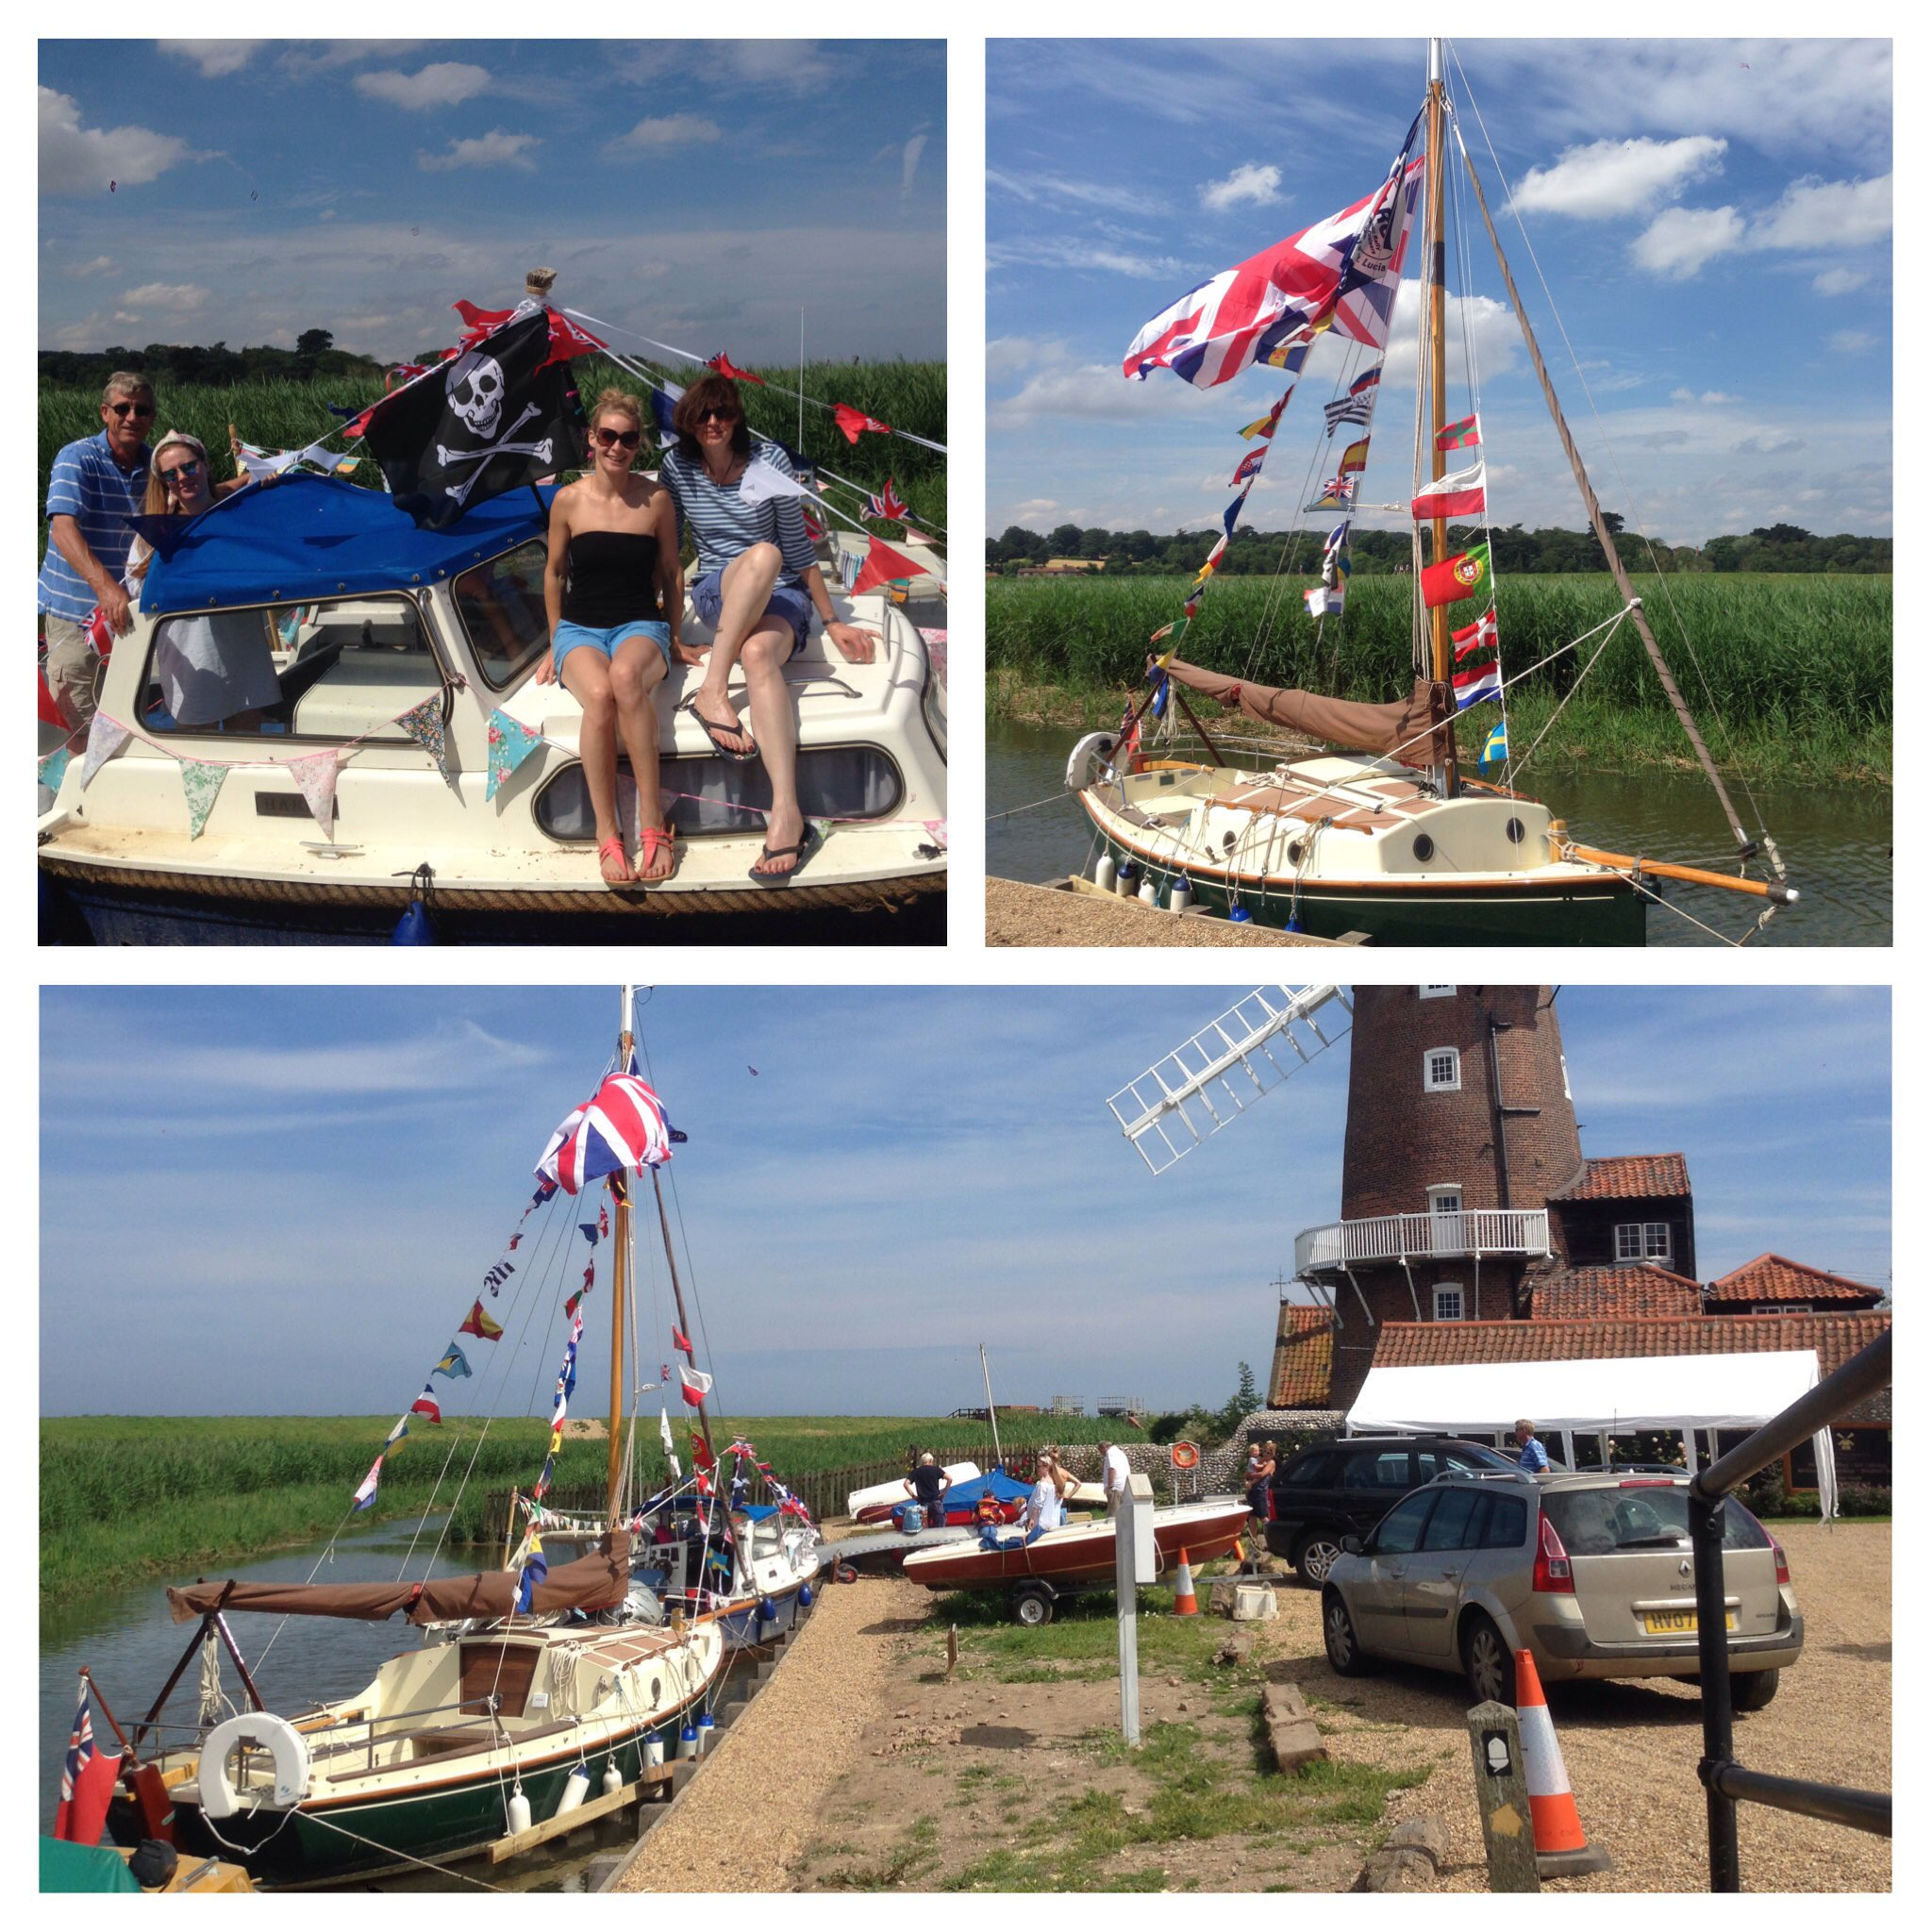 Cley Harbour Day, Cley quay (near the windmill), Cley-next-the-Sea, Norfolk. Park at village car park NR25 7RJ | A boat-themed day out! | Cley, boat, sailing, music, family event, pirate, outdoors